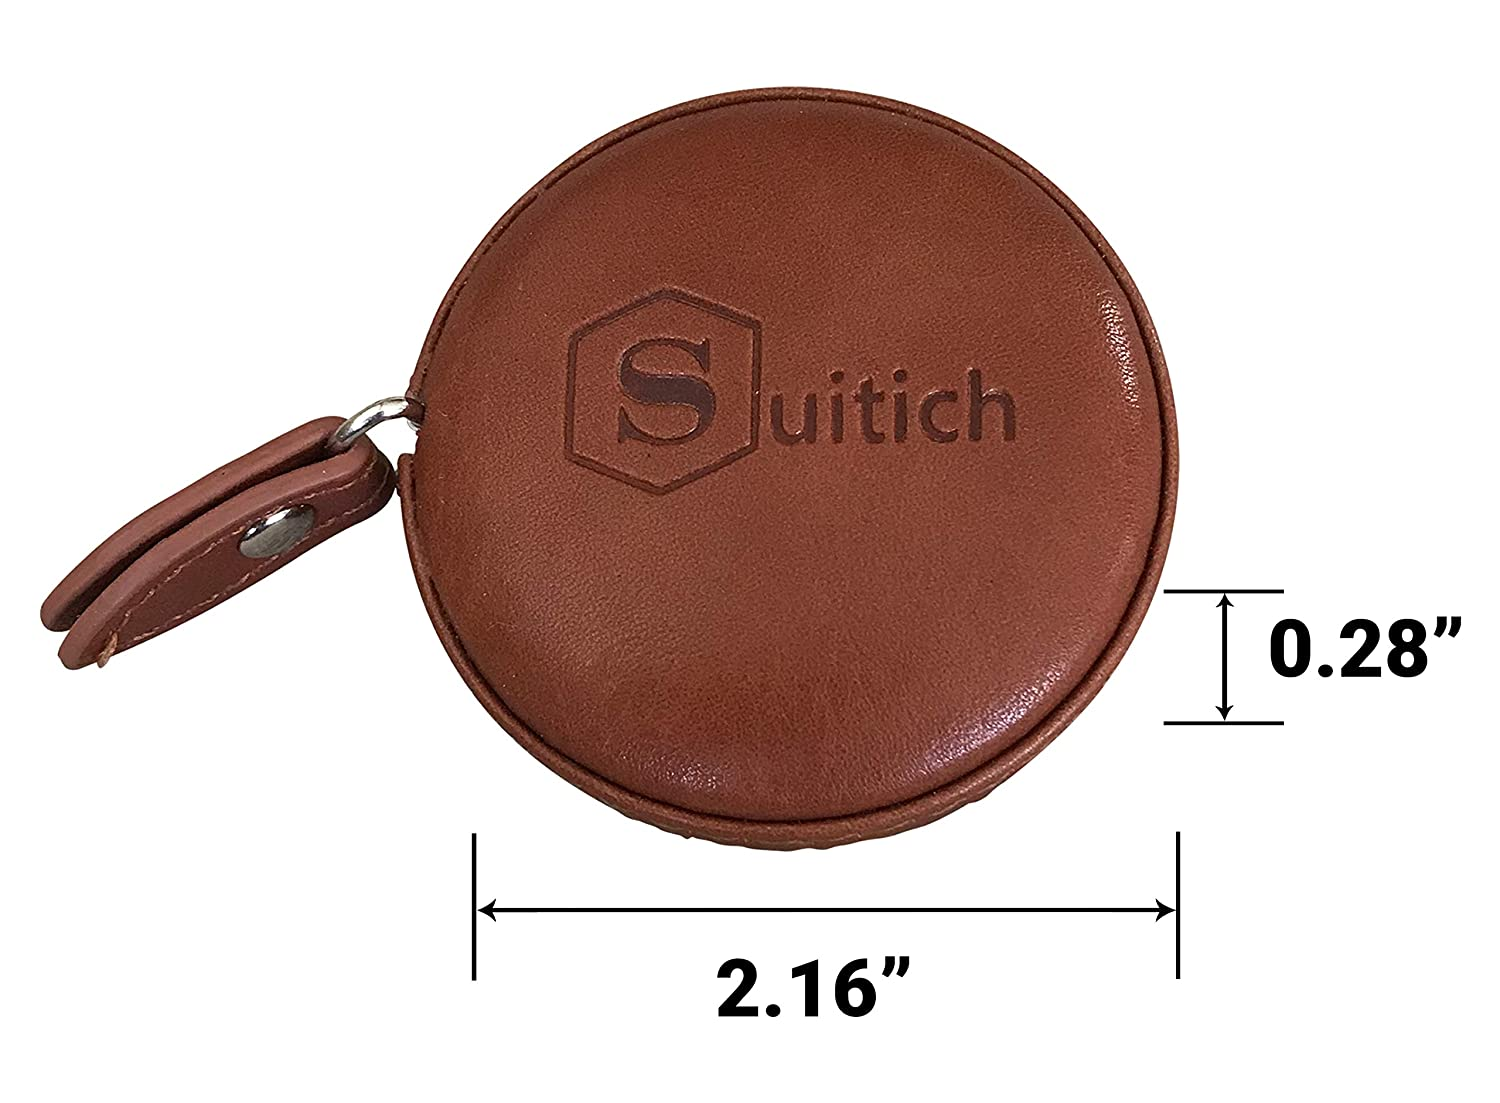 Diet Professional Leather Tape Measure for Tailors Sewing Medical and More! Body